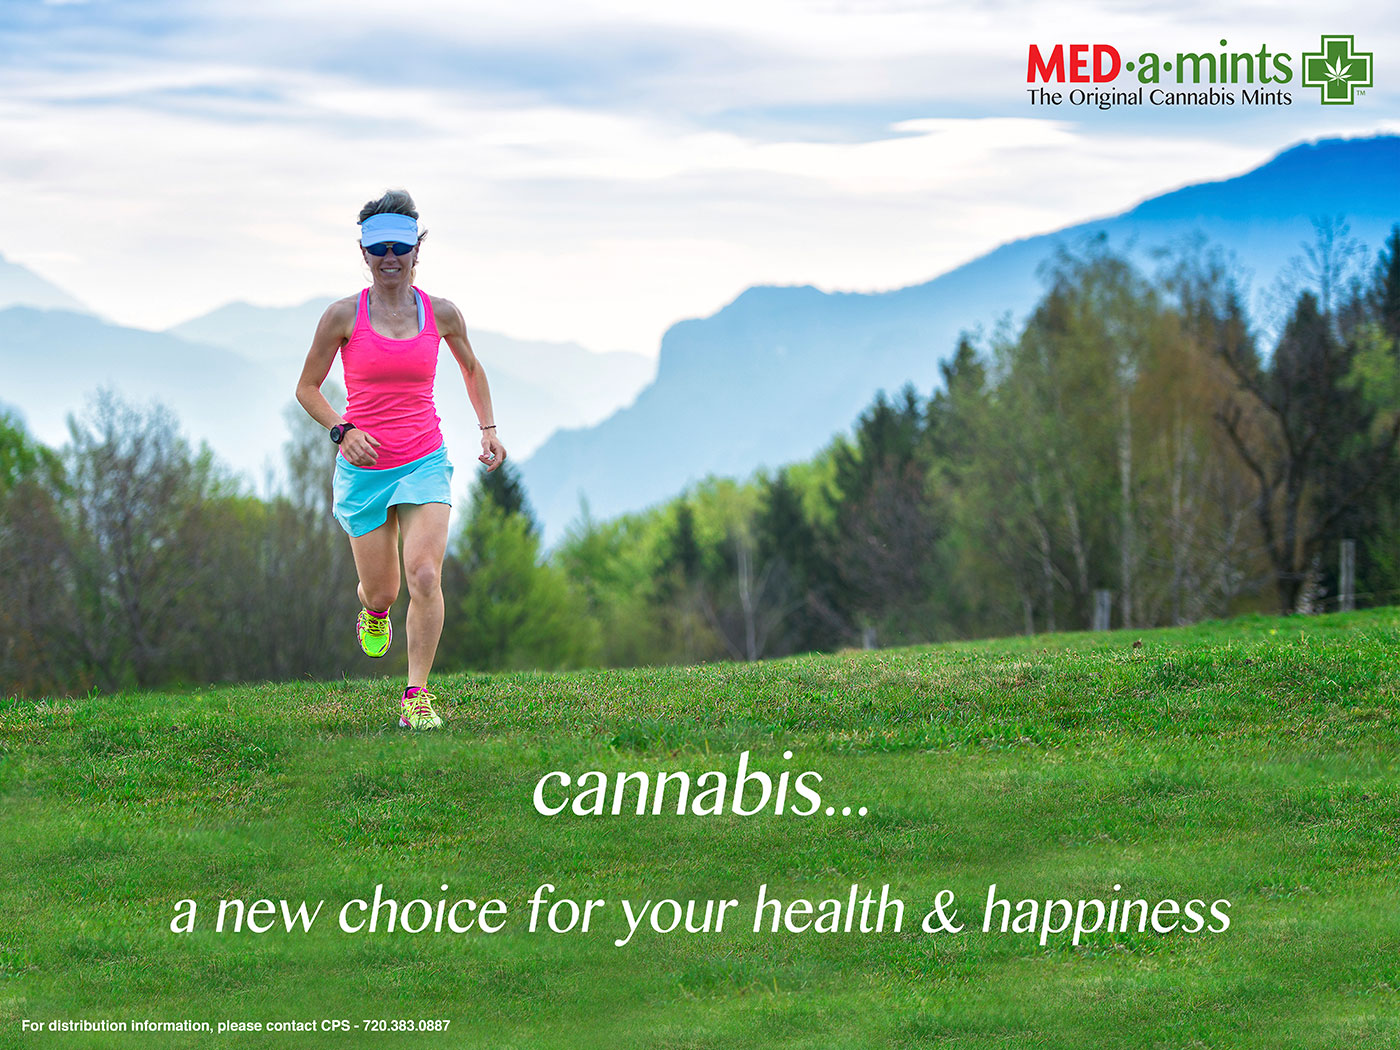 medamints-yay-cannabis-running-woman-web